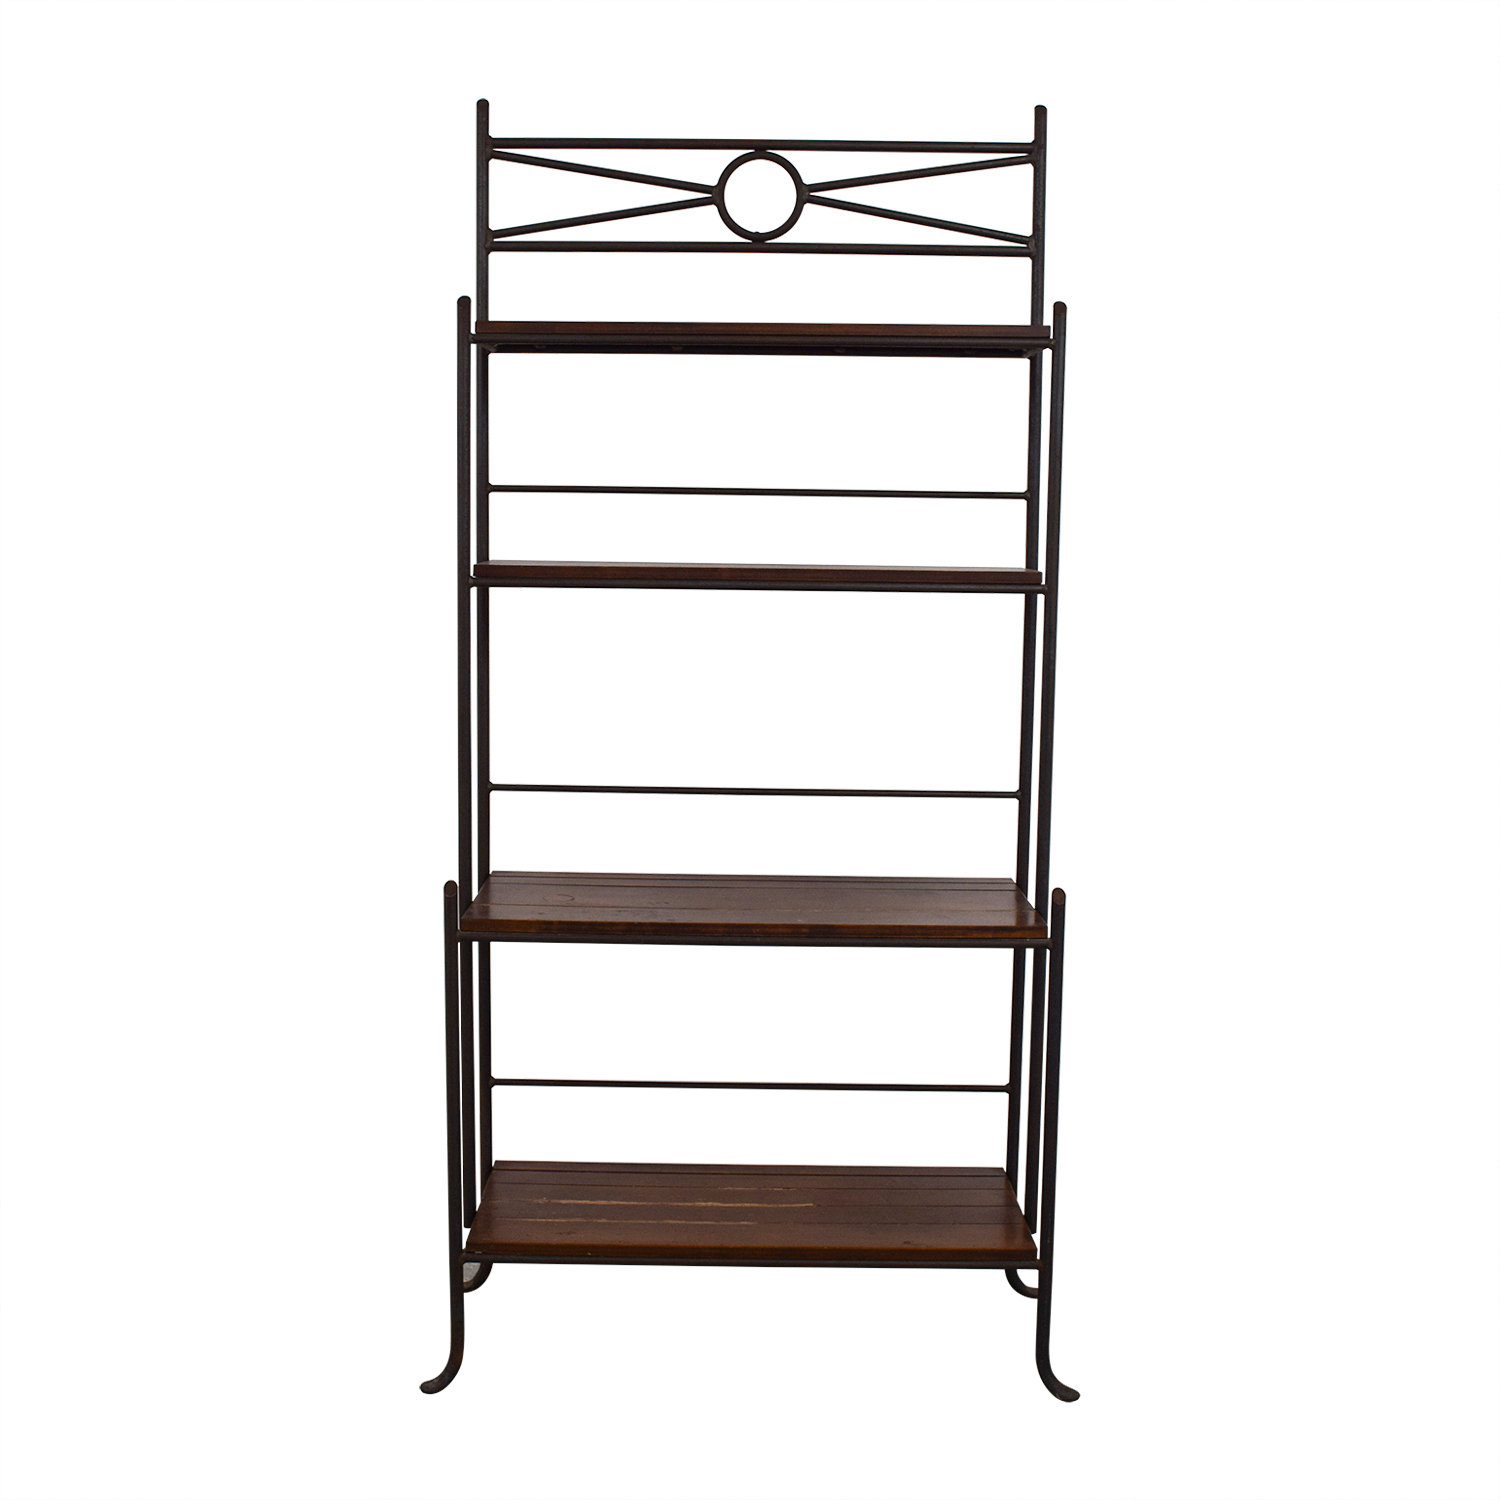 Crate & Barrel Crate & Barrel Wood and Metal Book Case coupon